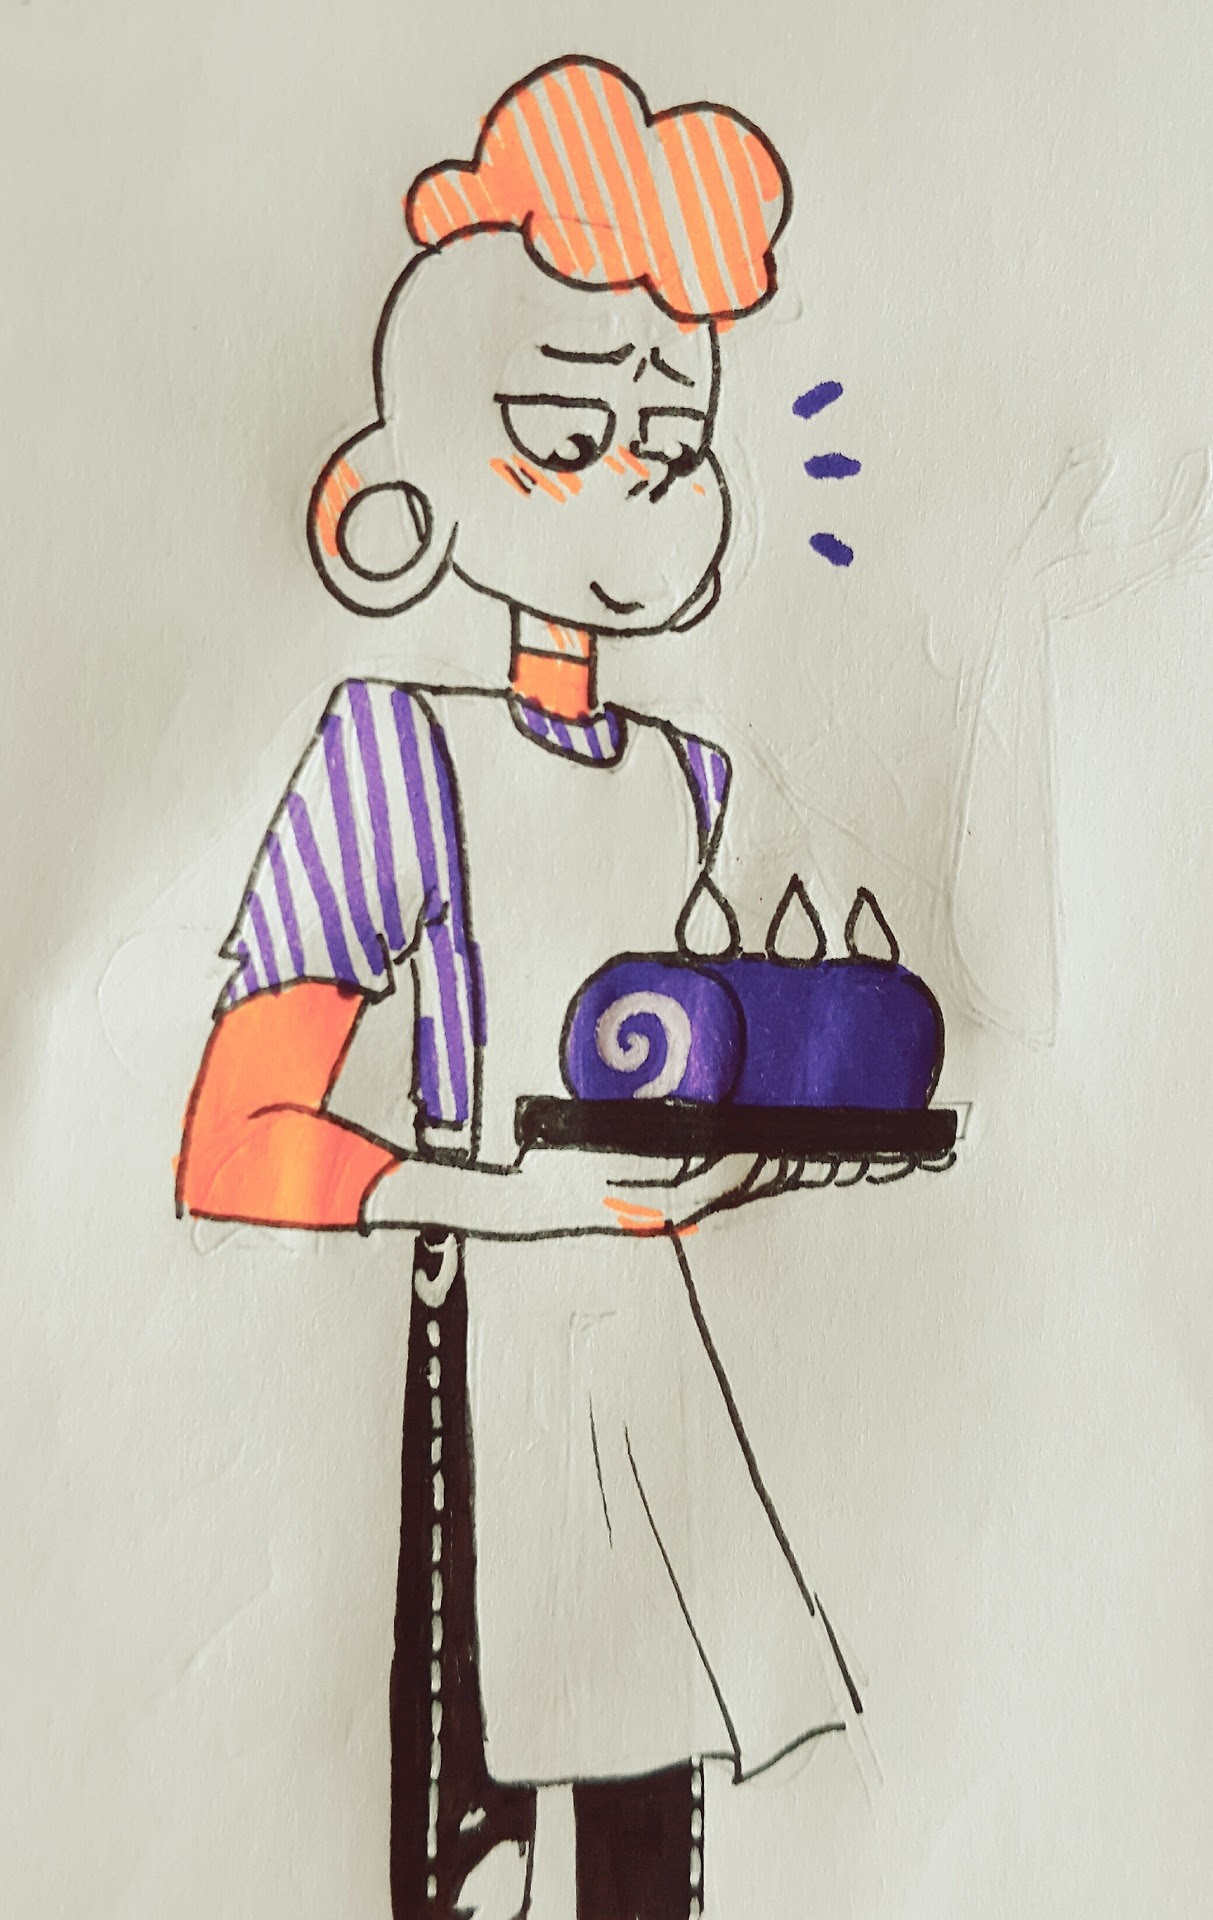 Jerk donut boy is actually anxious cake boy the truth is out